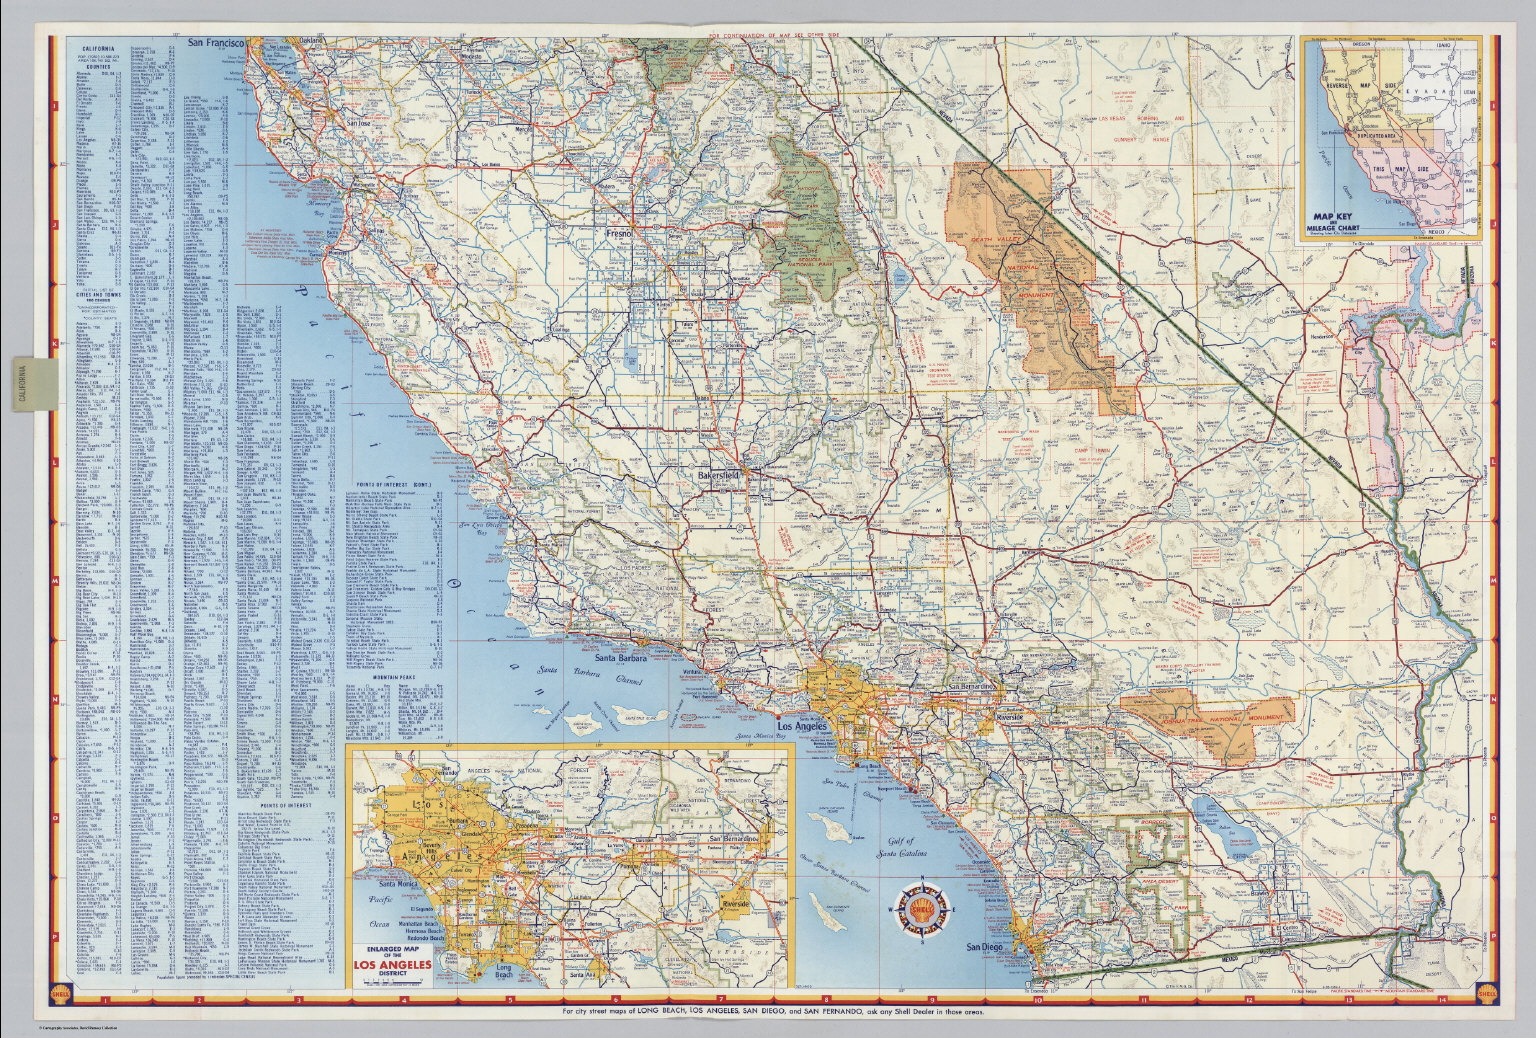 Shell Highway Map Of California Southern Portion David Rumsey - Ca road map